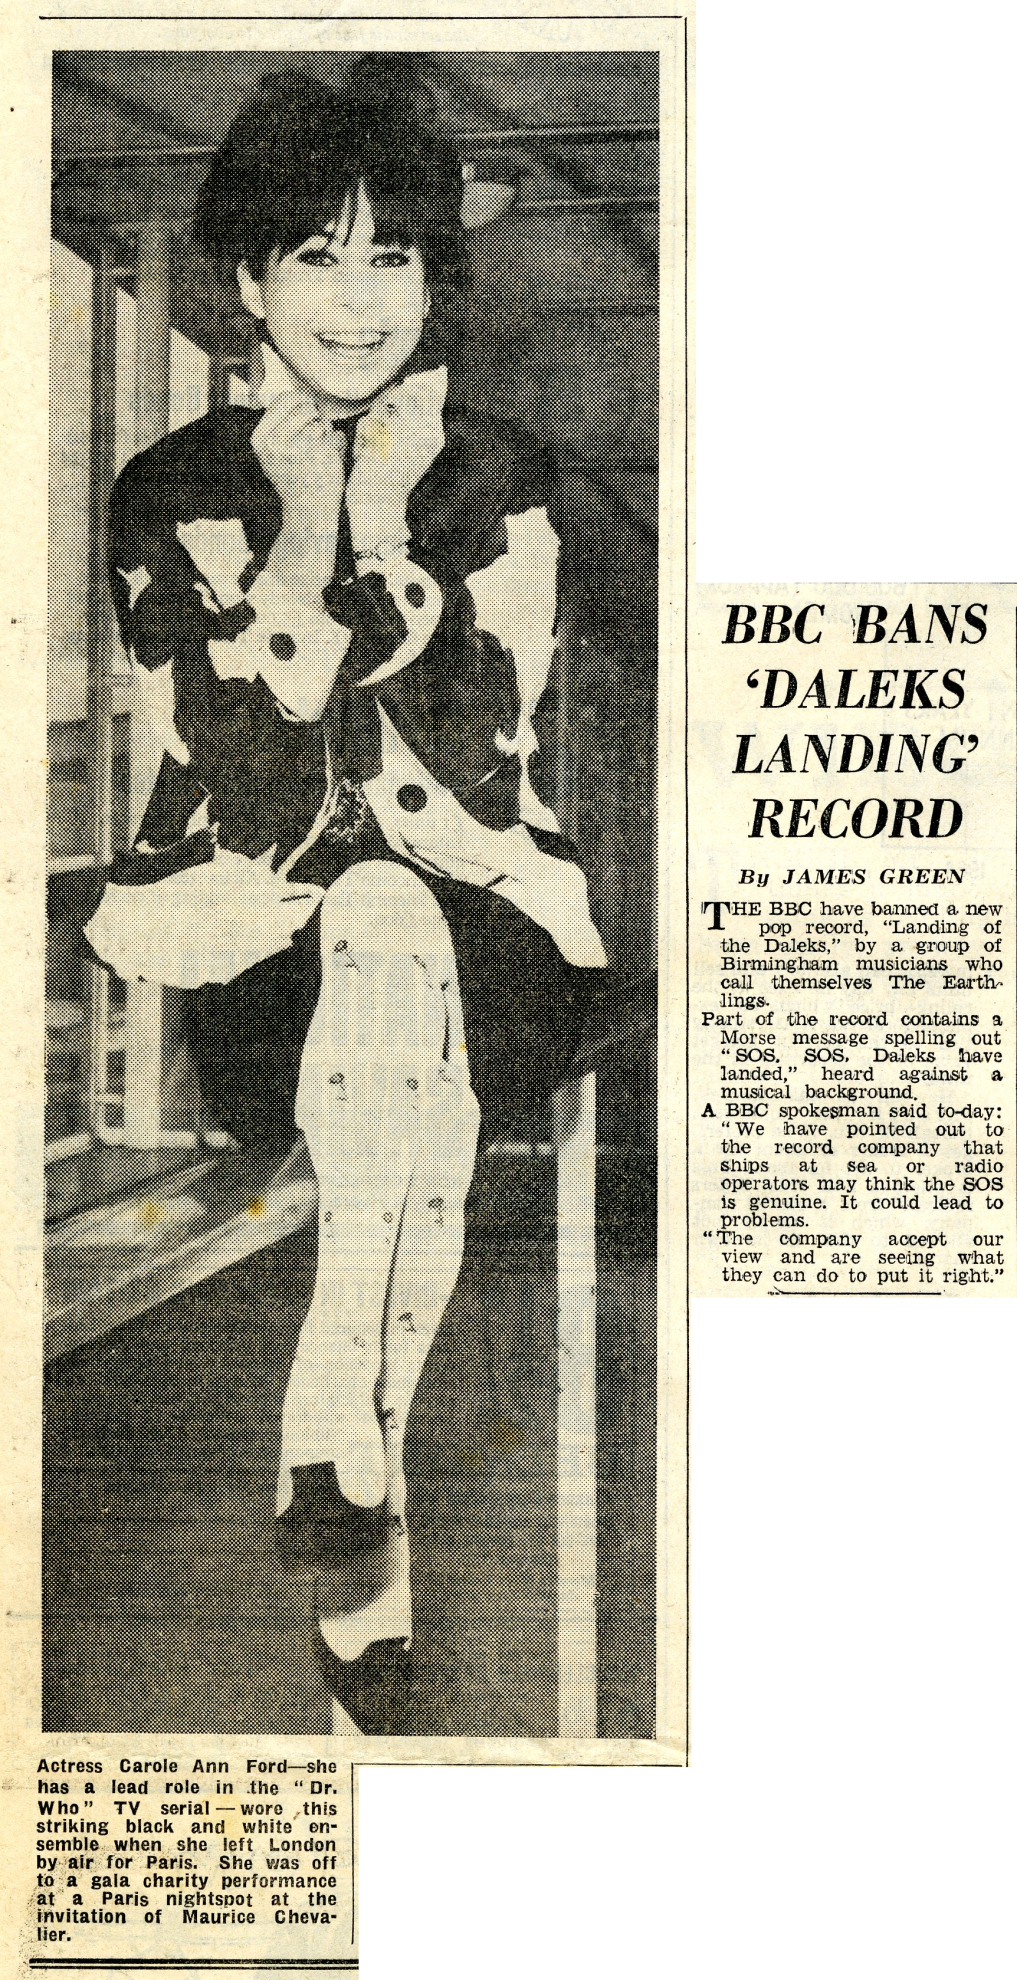 London Evening News and Star, 28 January 1965 with article about Parlophone's Landing of the Daleks